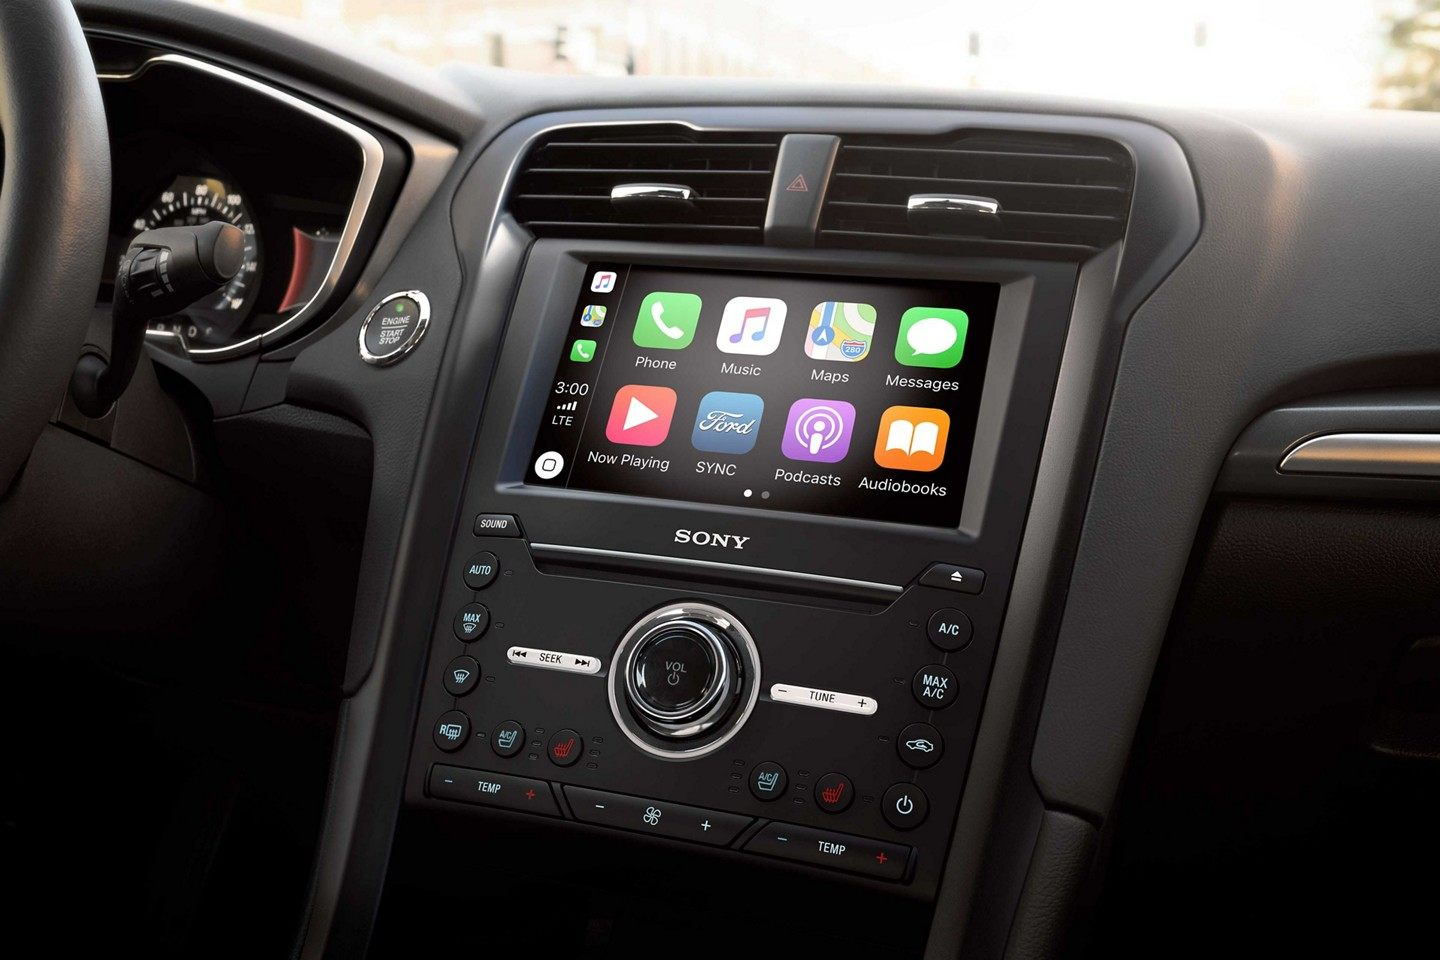 2019 Fusion Infotainment Center